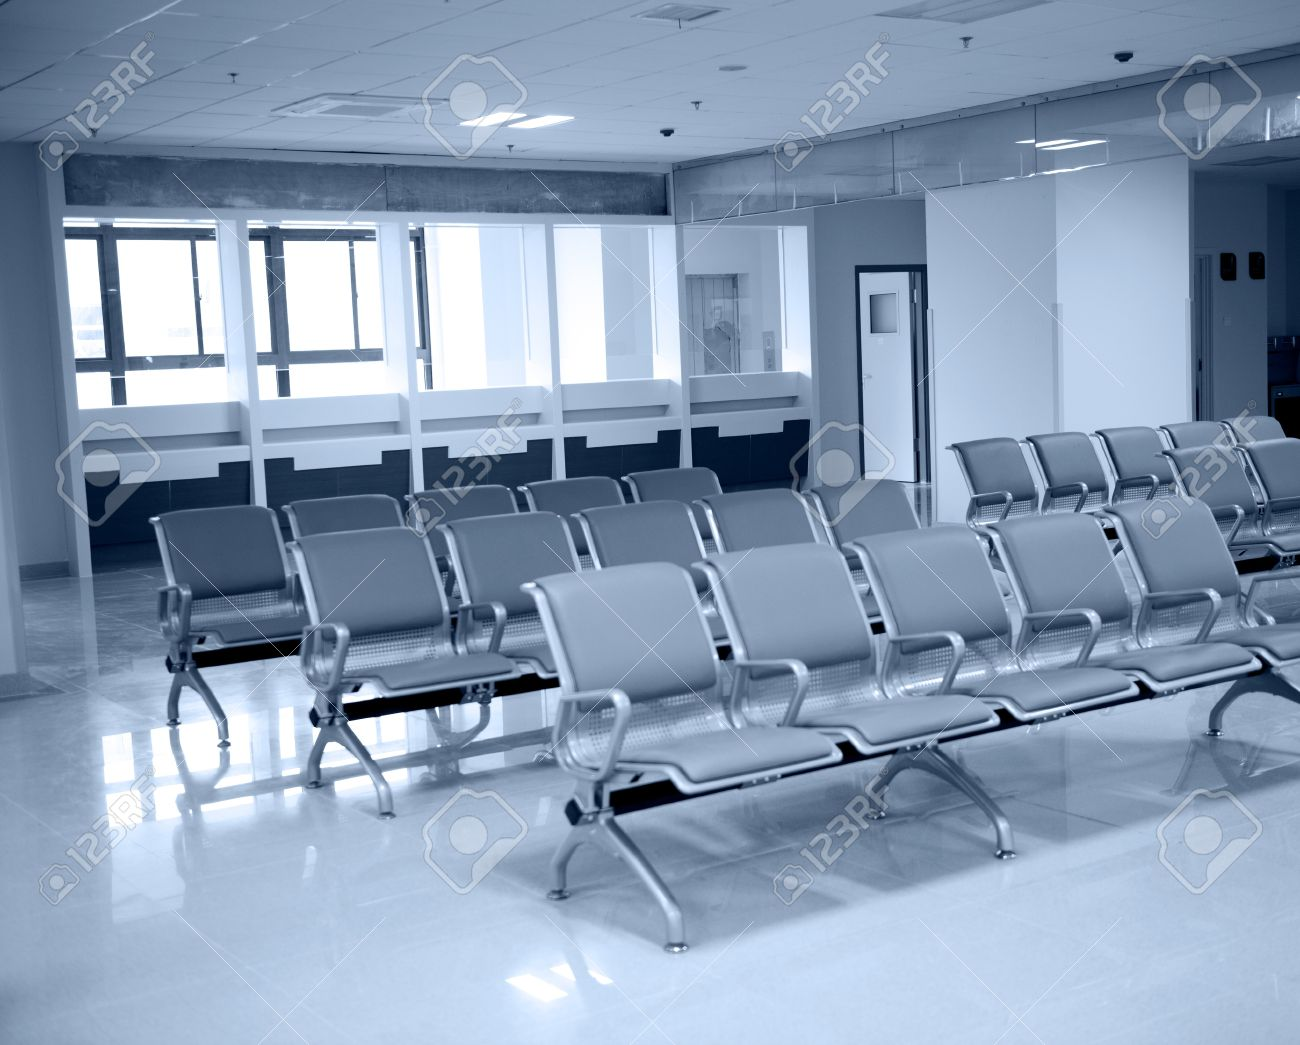 Hospital waiting room with empty chairs stock photo 17828381